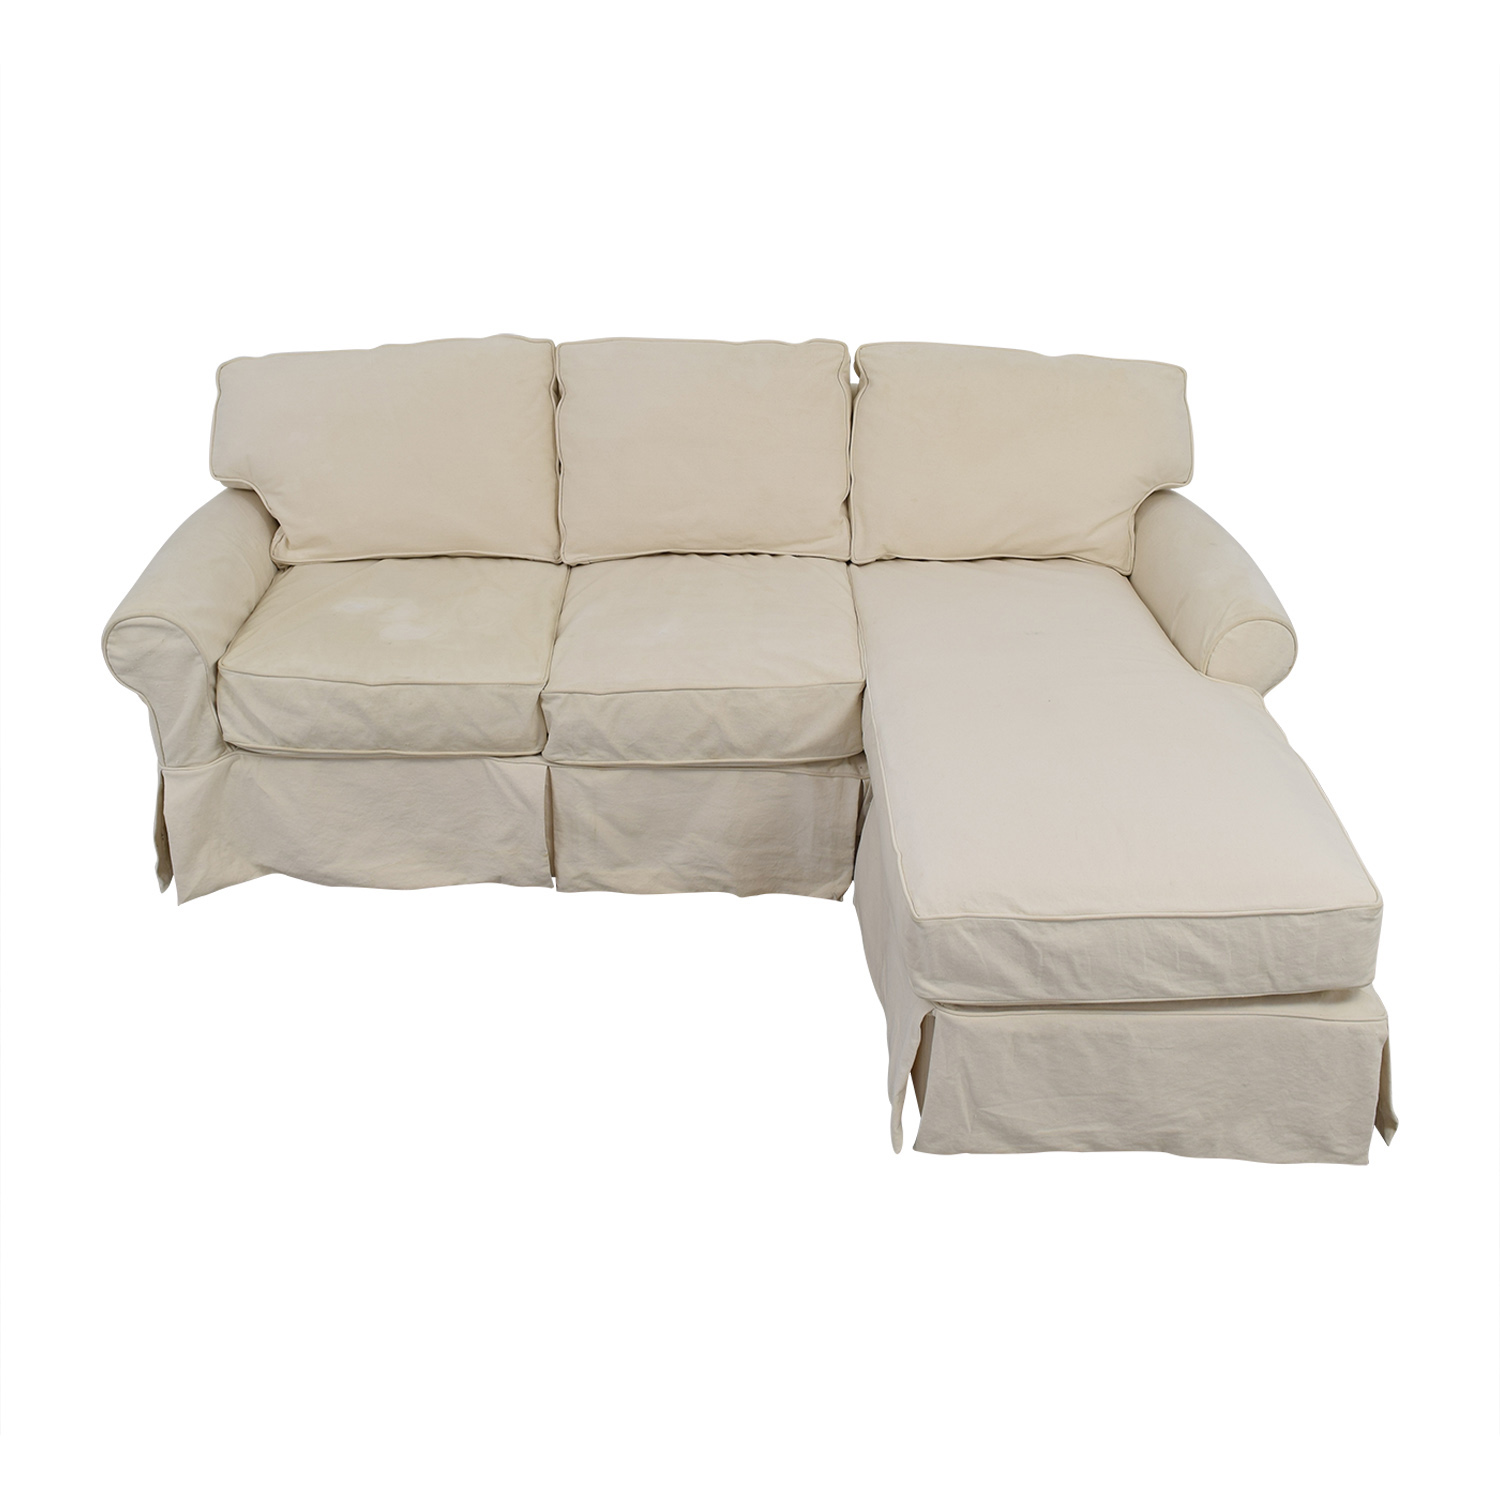 Home Decorators Collection Home Decorators Collection Mayfair White Sectional Sofas